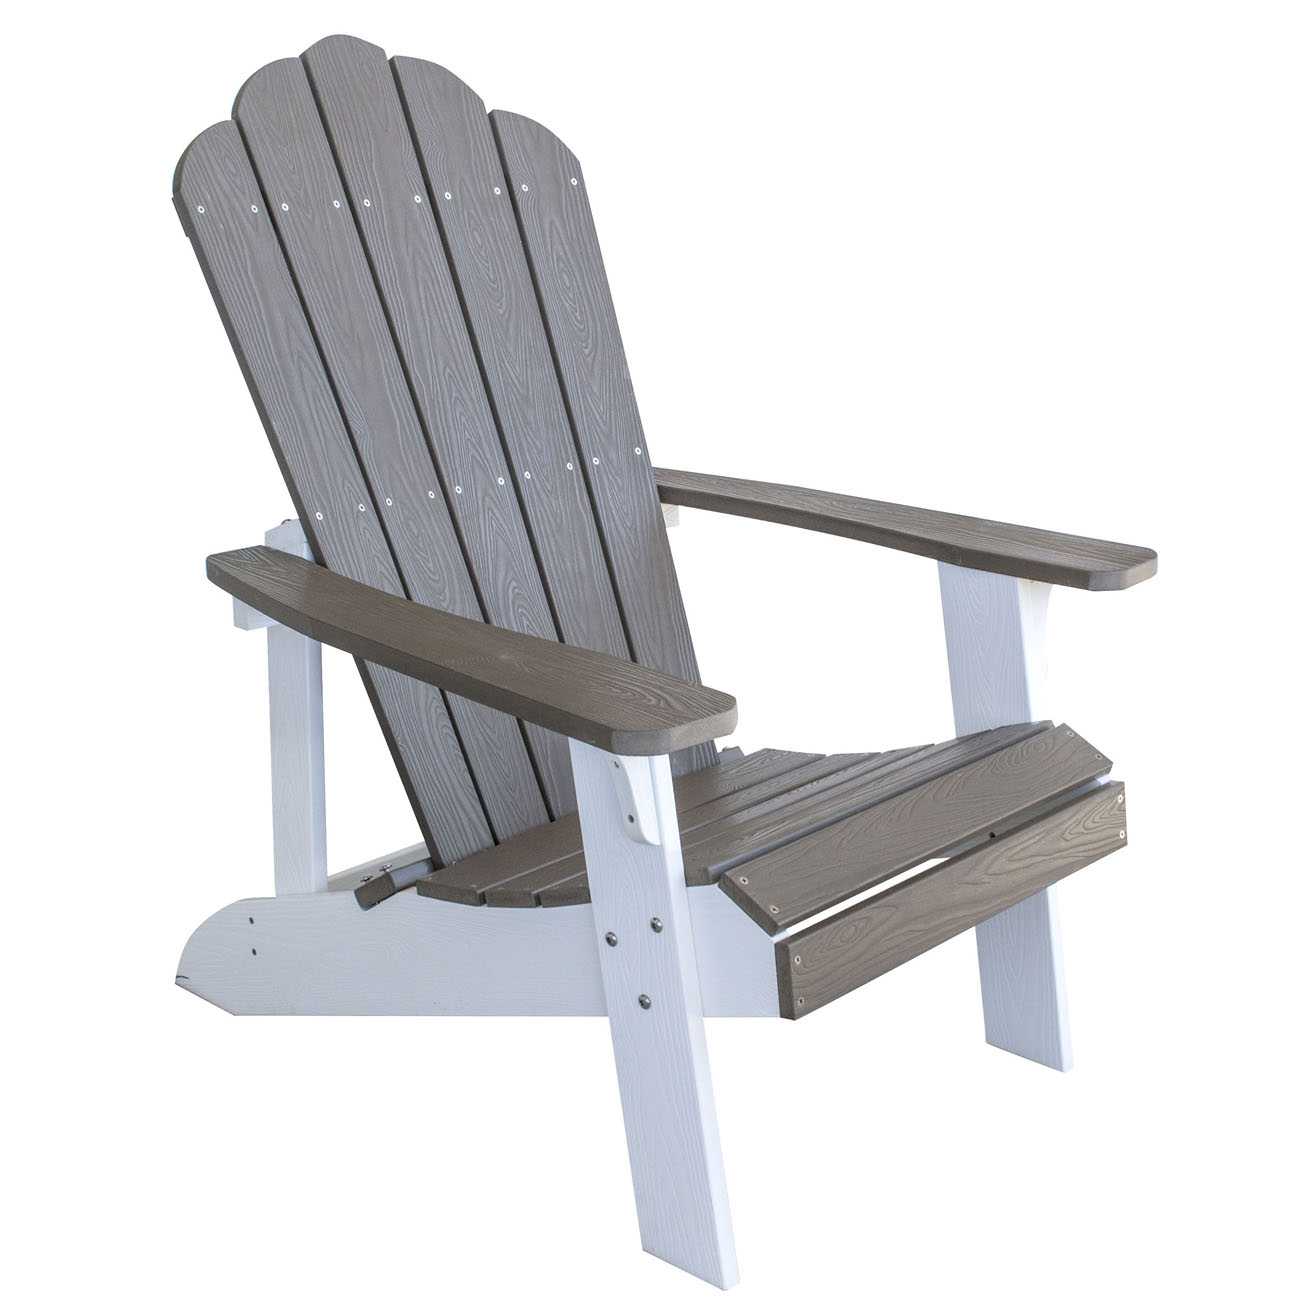 Outdoor Two Tone Adirondack Chair with Durable Simulated Wood Construction - Driftwood with White Accents